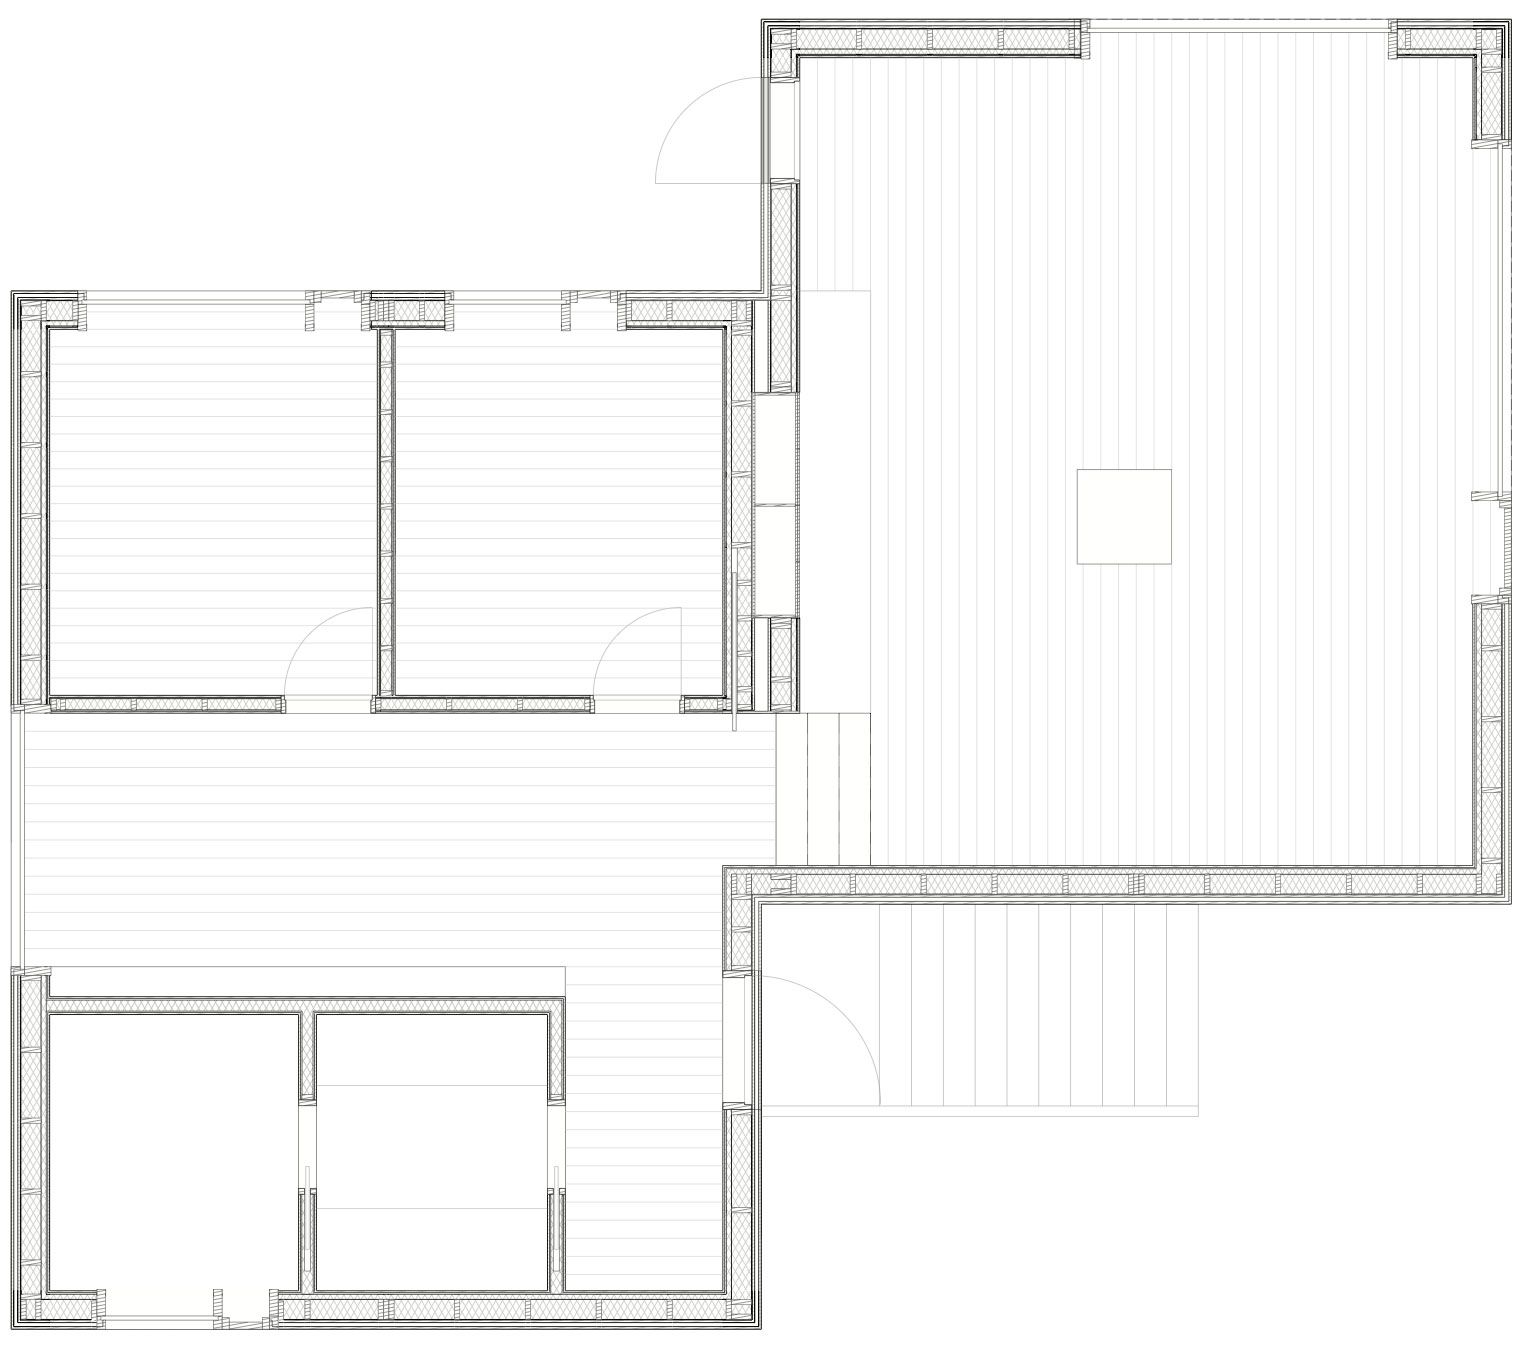 Floor Plan, Vega Cottage in Vega, Norway